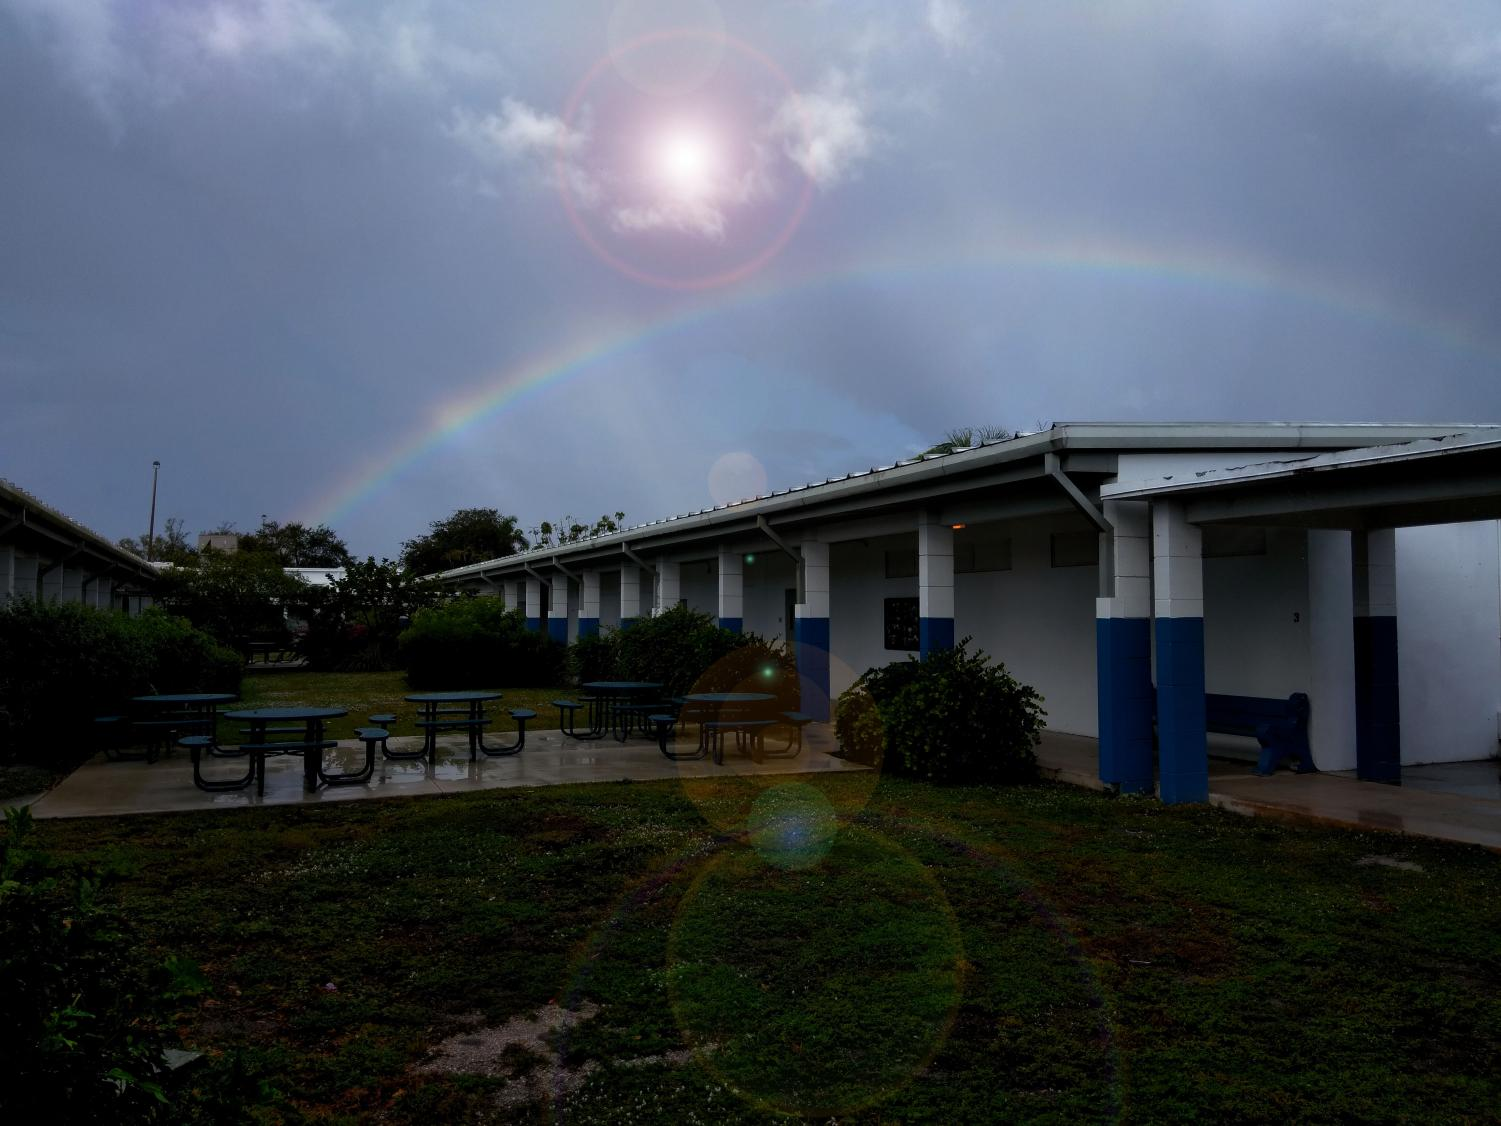 COMES THE RAINBOW: Humid and hot after a series of morning showers, Inlet Grove's campus is cradled beneath a shining sun and a radiant rainbow arch.